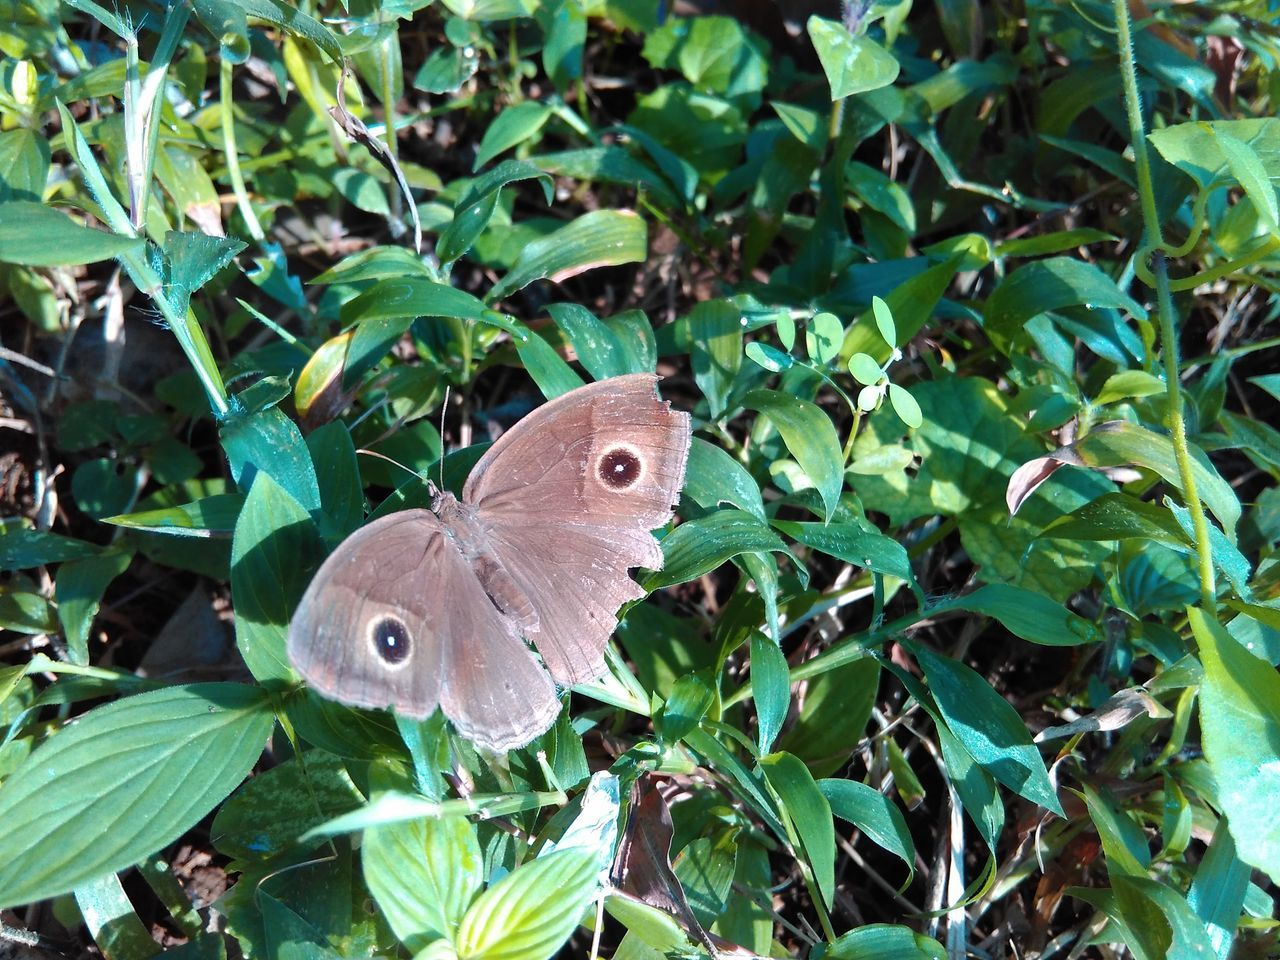 one animal, leaf, plant, animal themes, animals in the wild, green color, butterfly - insect, nature, animal wildlife, growth, insect, outdoors, butterfly, no people, day, close-up, perching, beauty in nature